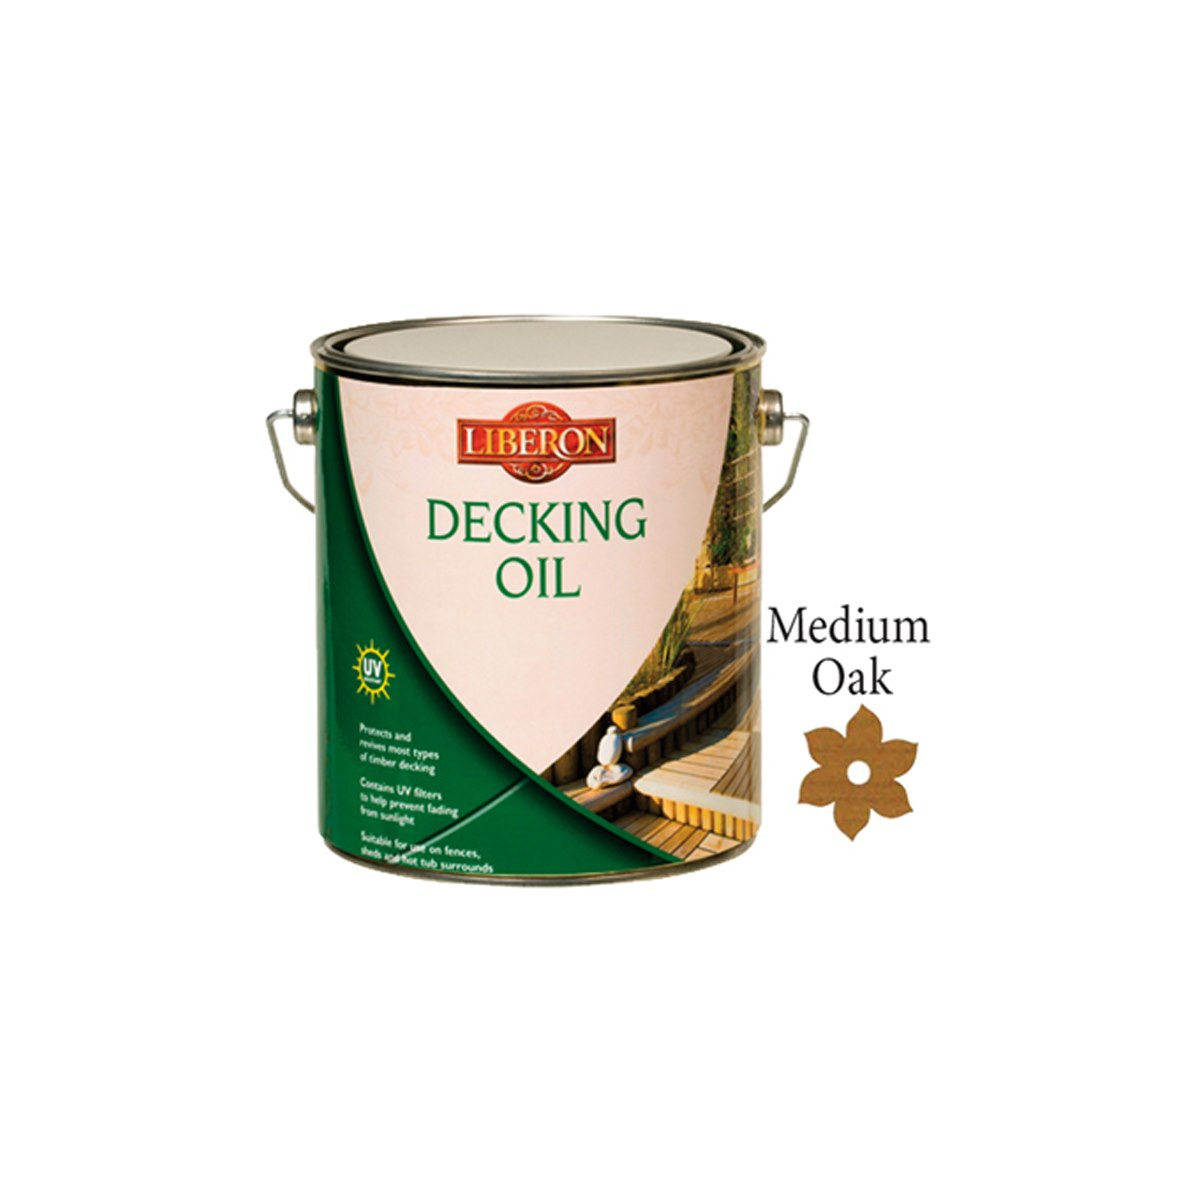 Liberon Decking Oil Medium Oak 2.5 Litre